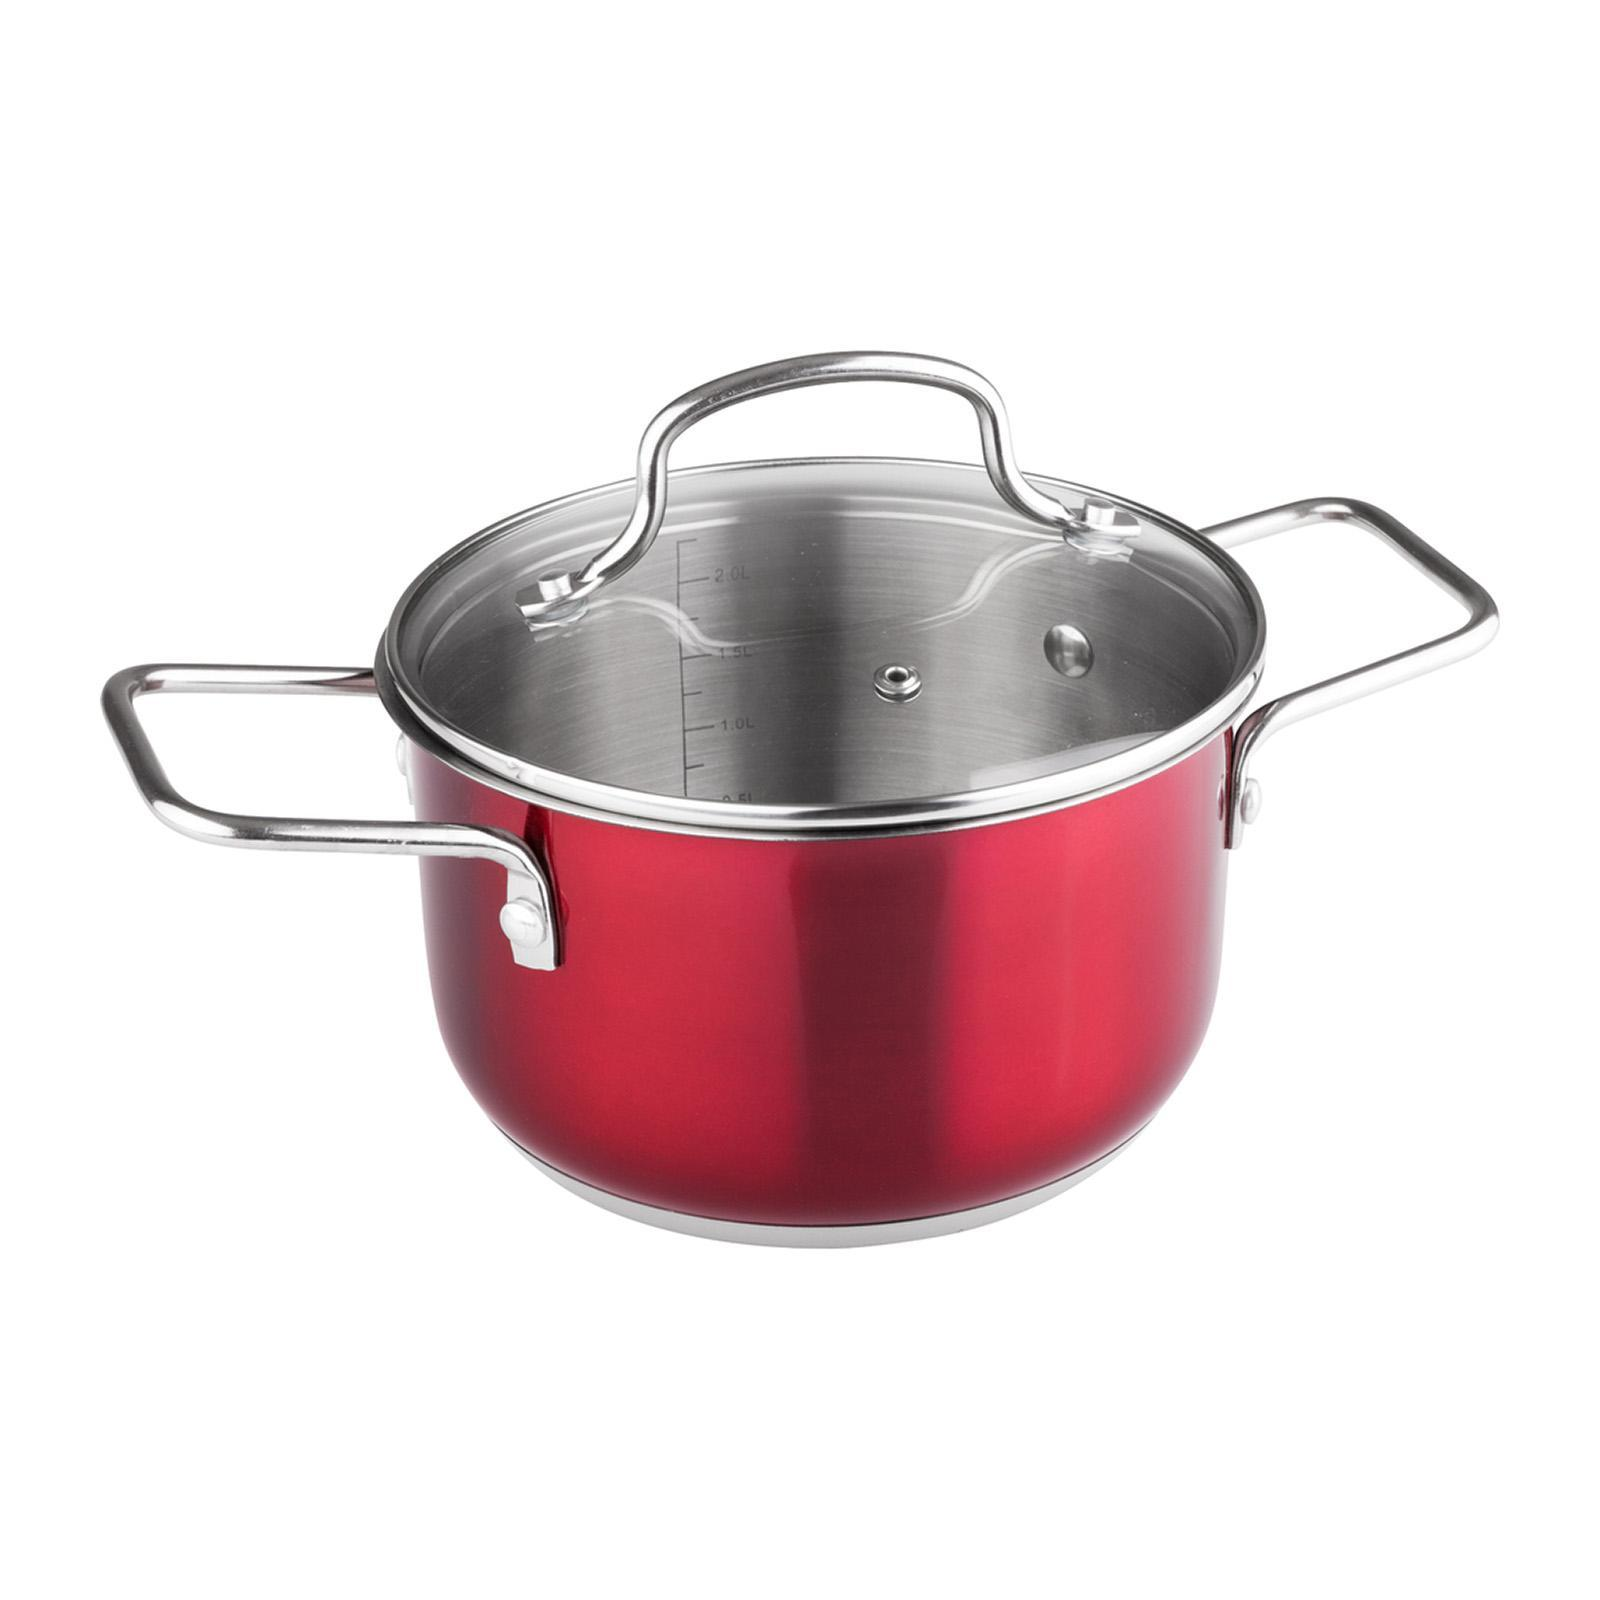 Lamart Stainless Steel Pot With Glass Lid 18X10.5Cm Red